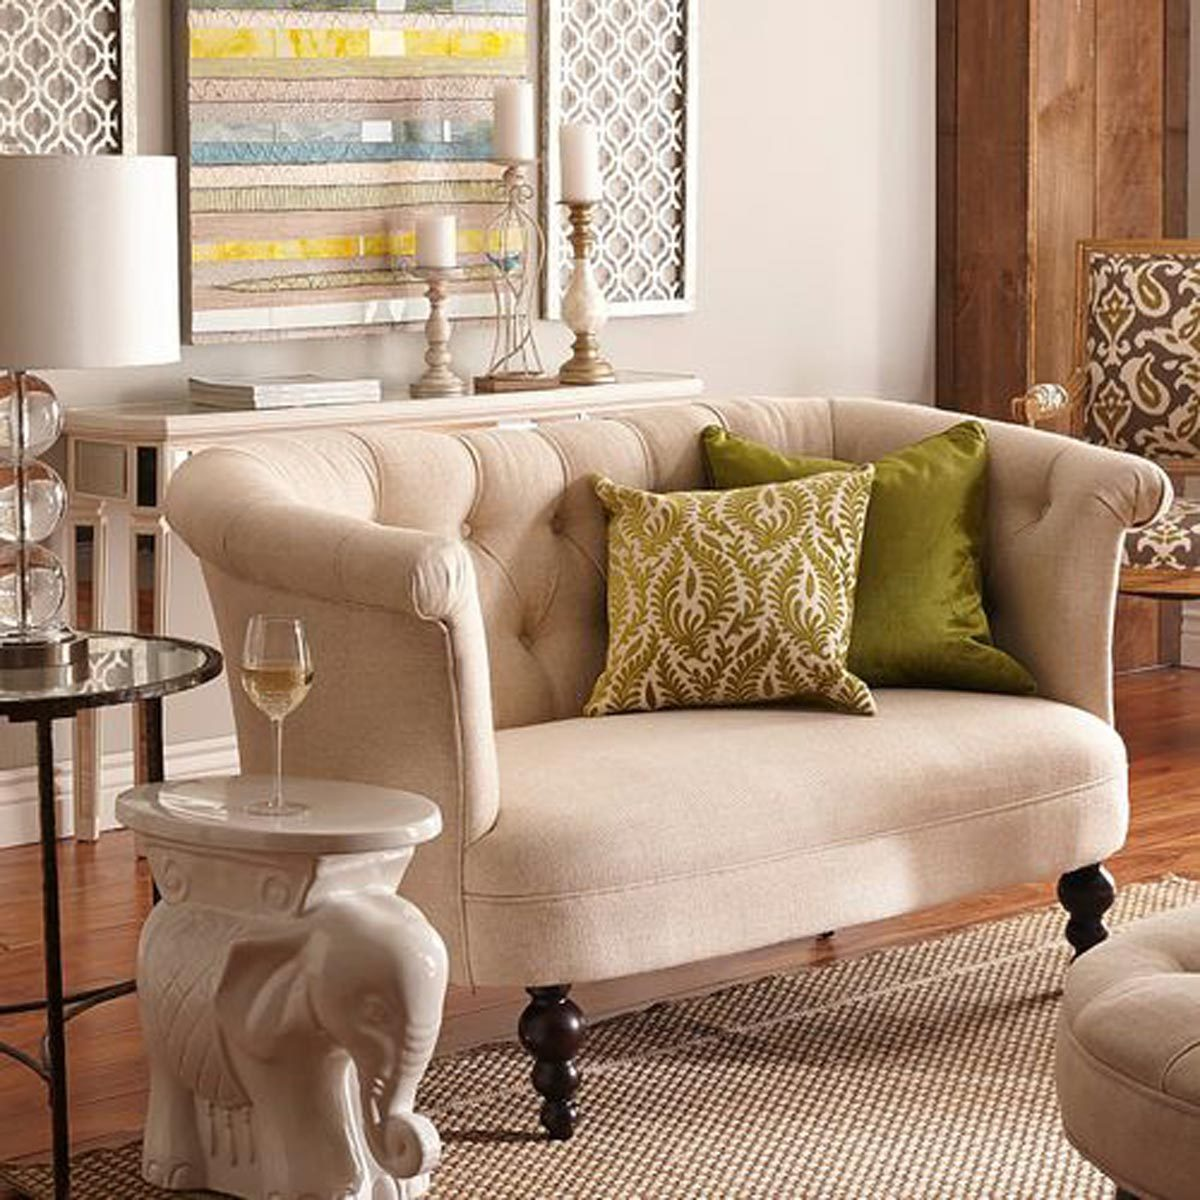 Trends Sofa Top 11 Home Décor Trends For 2019